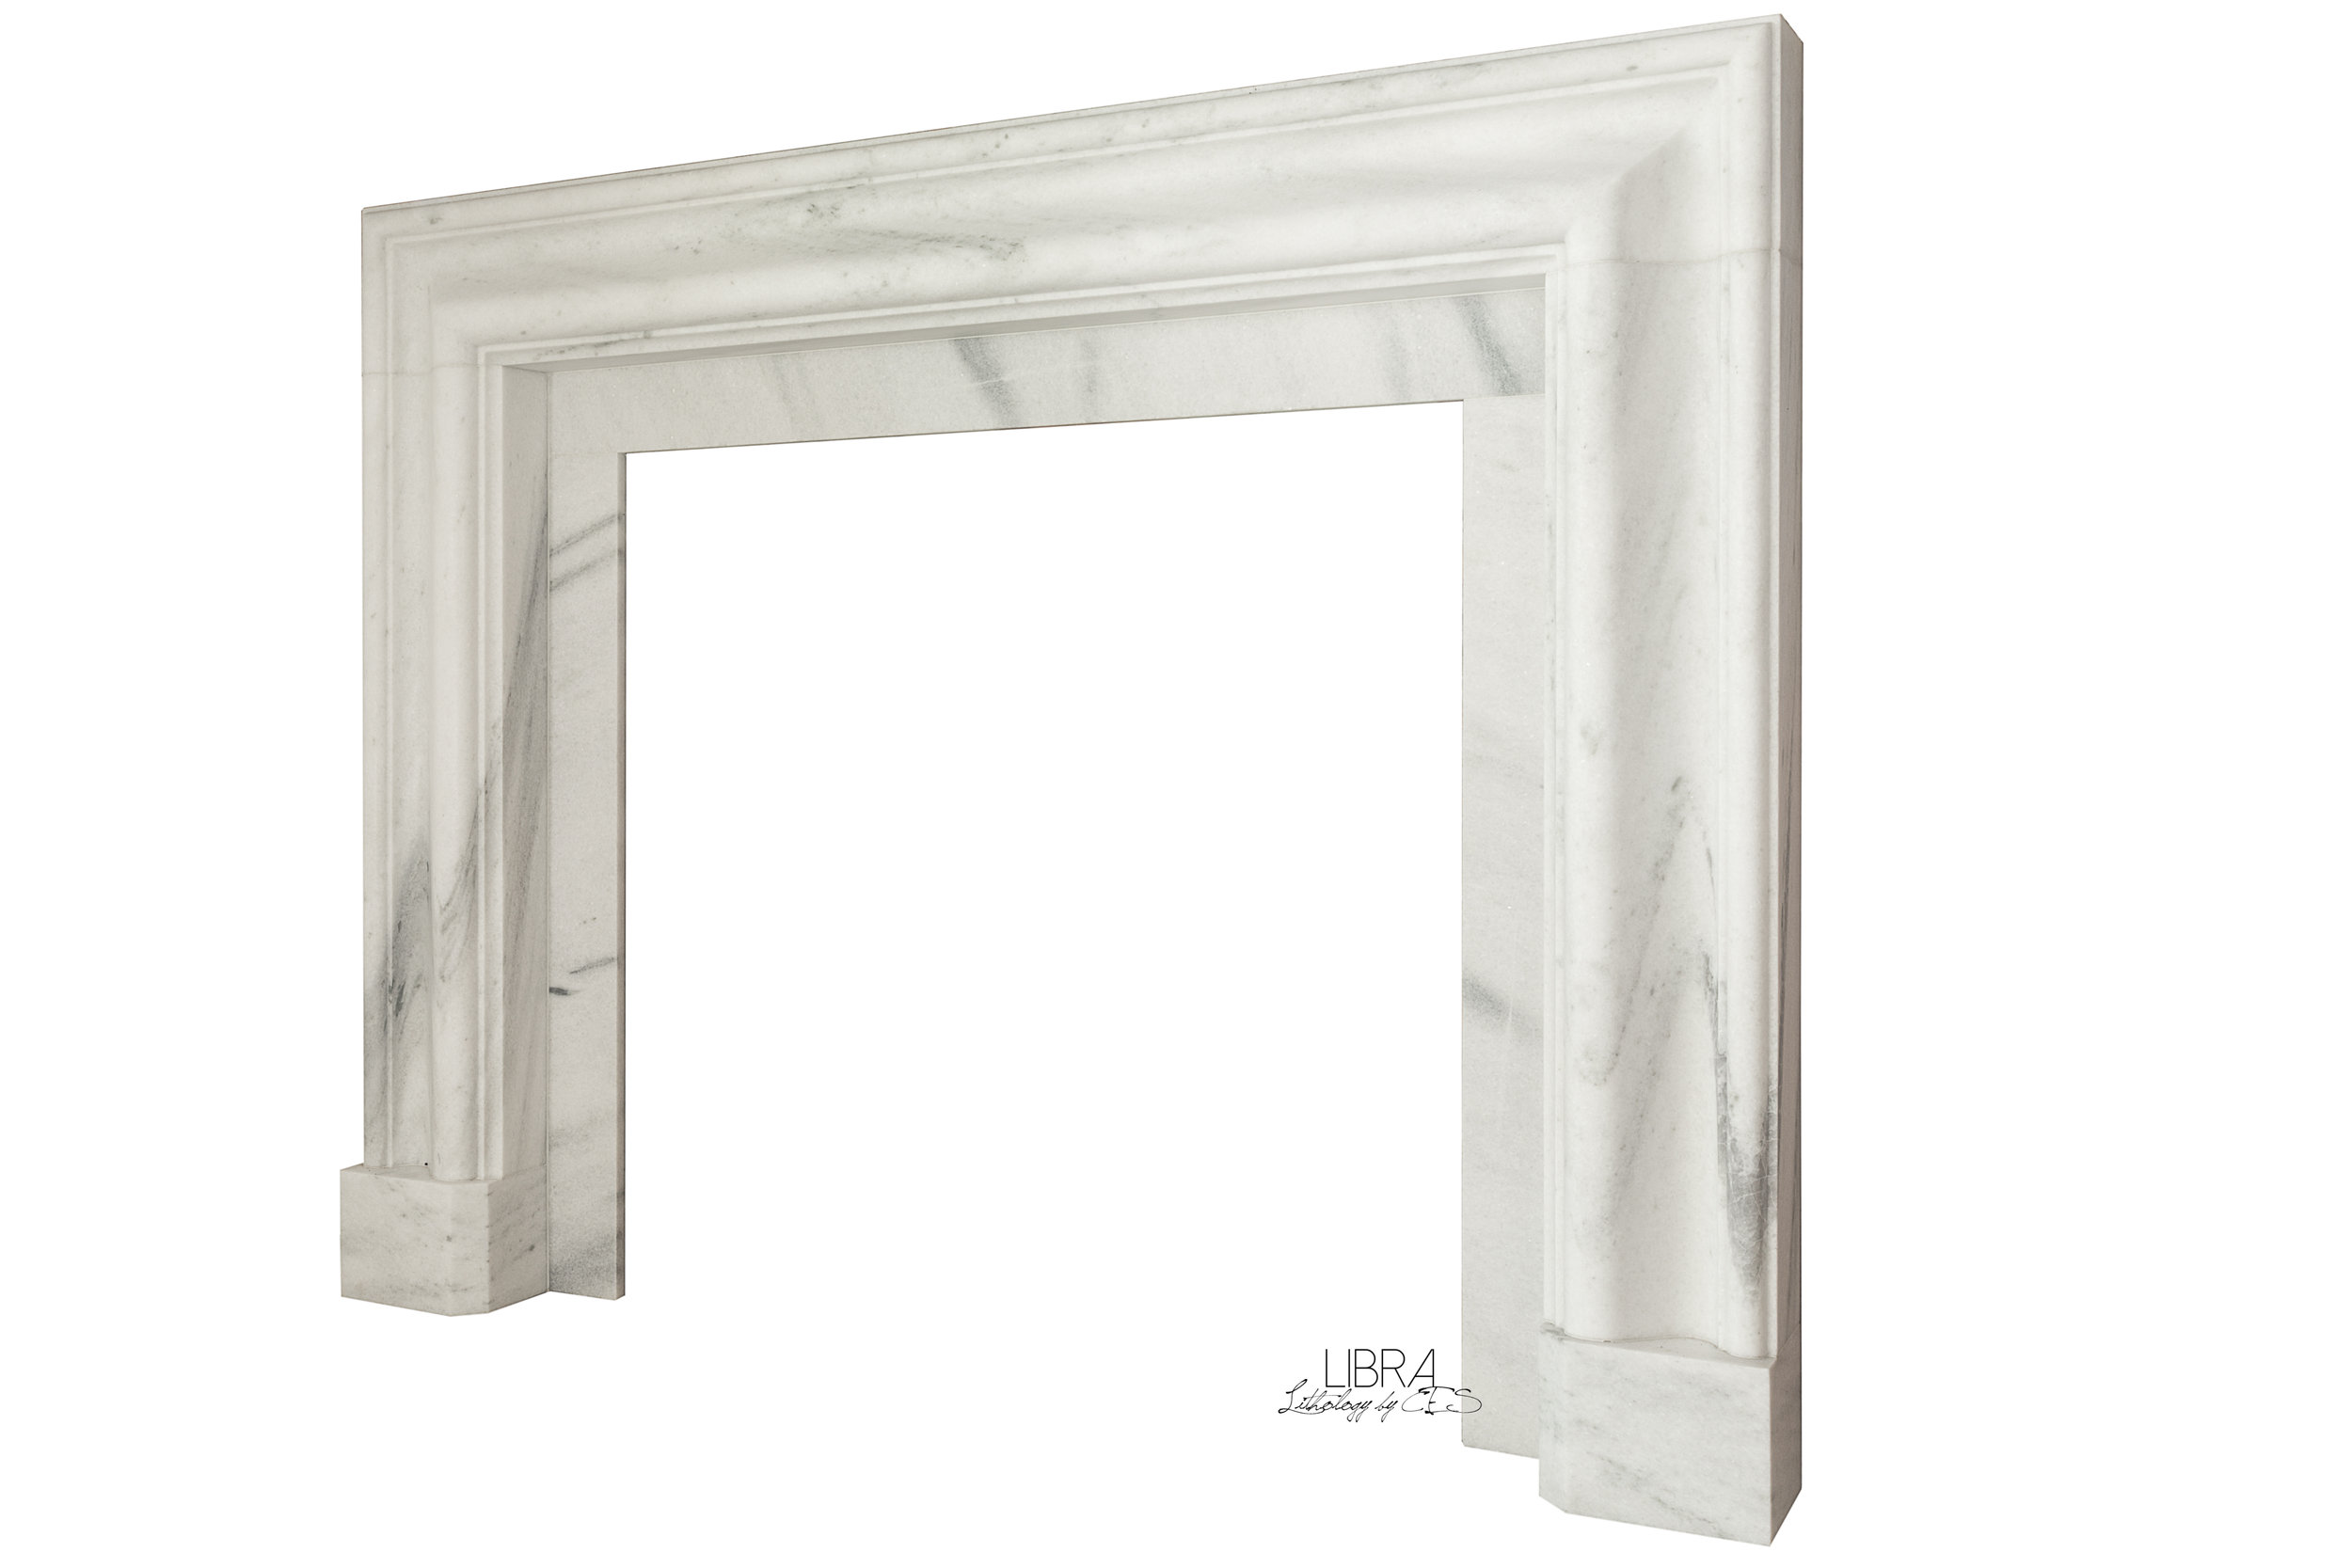 Libra Side View White Marble.jpg